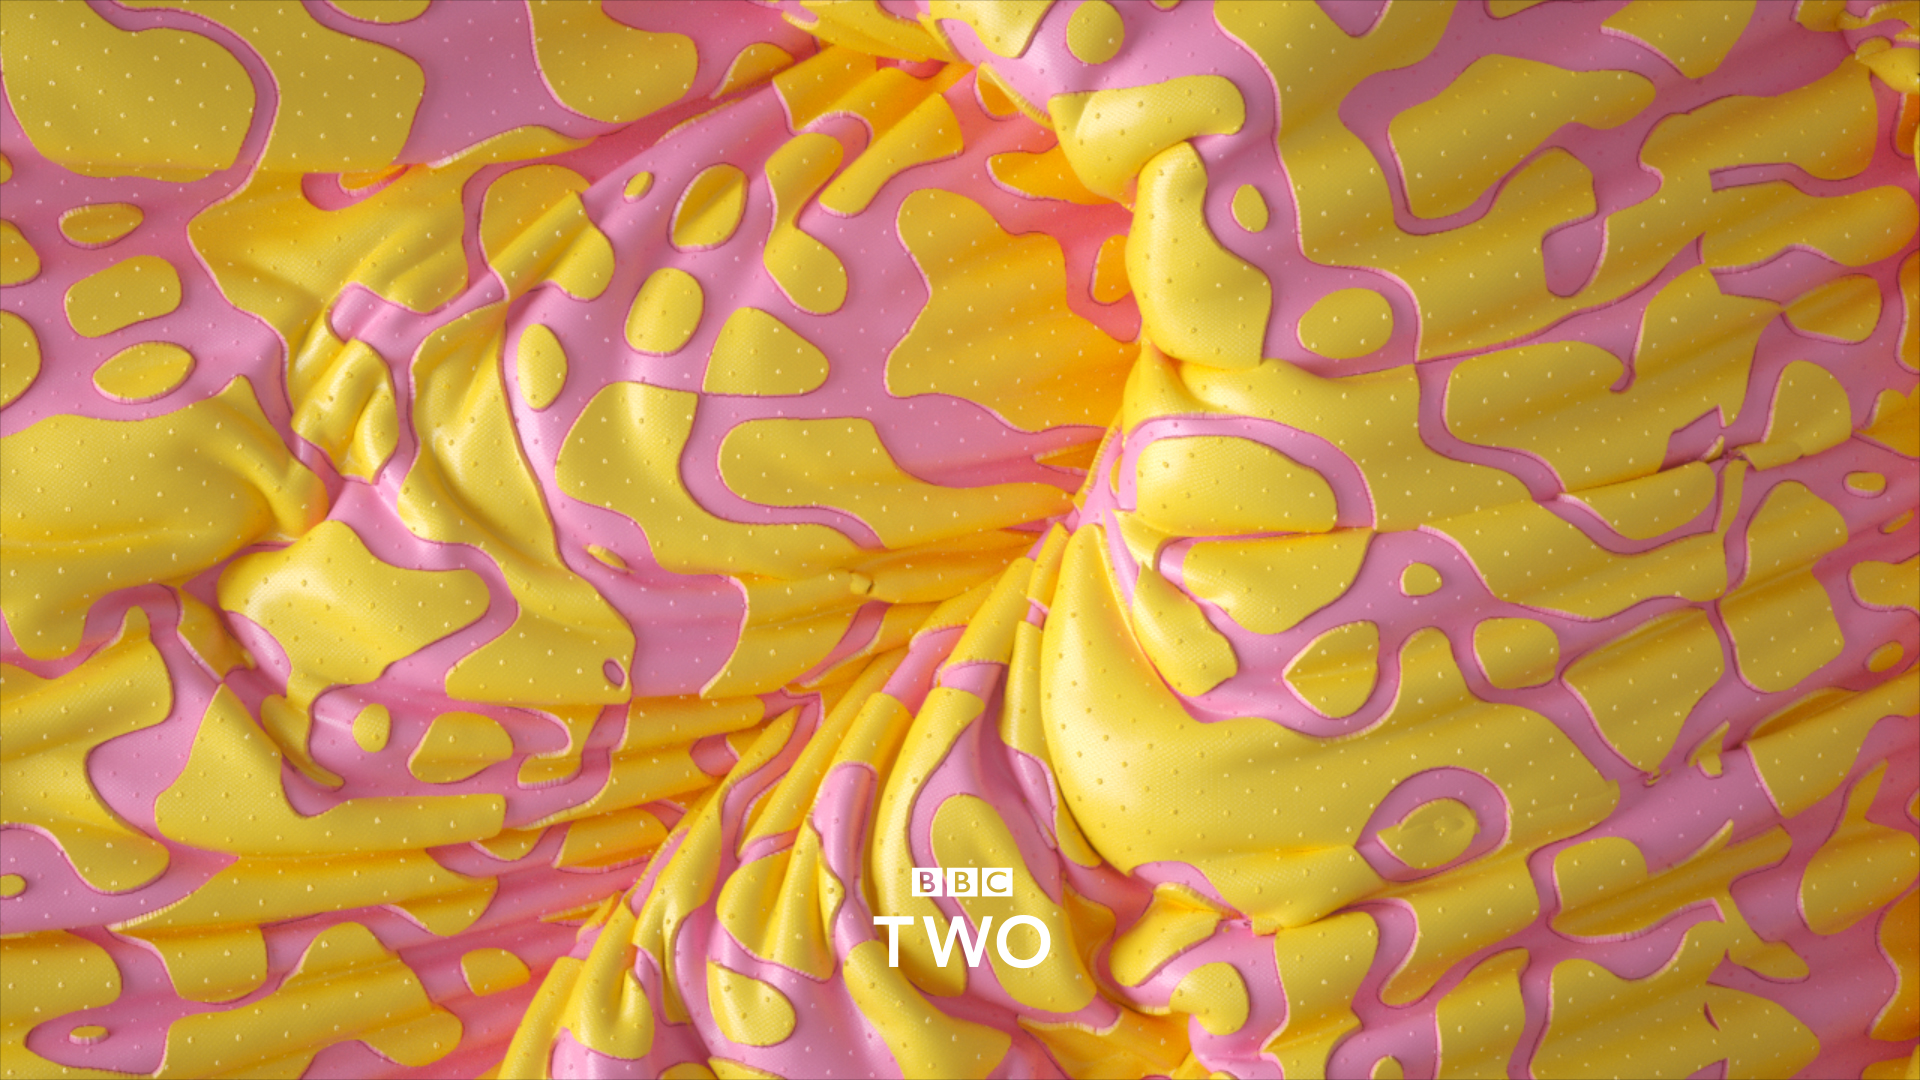 BBC_two_10